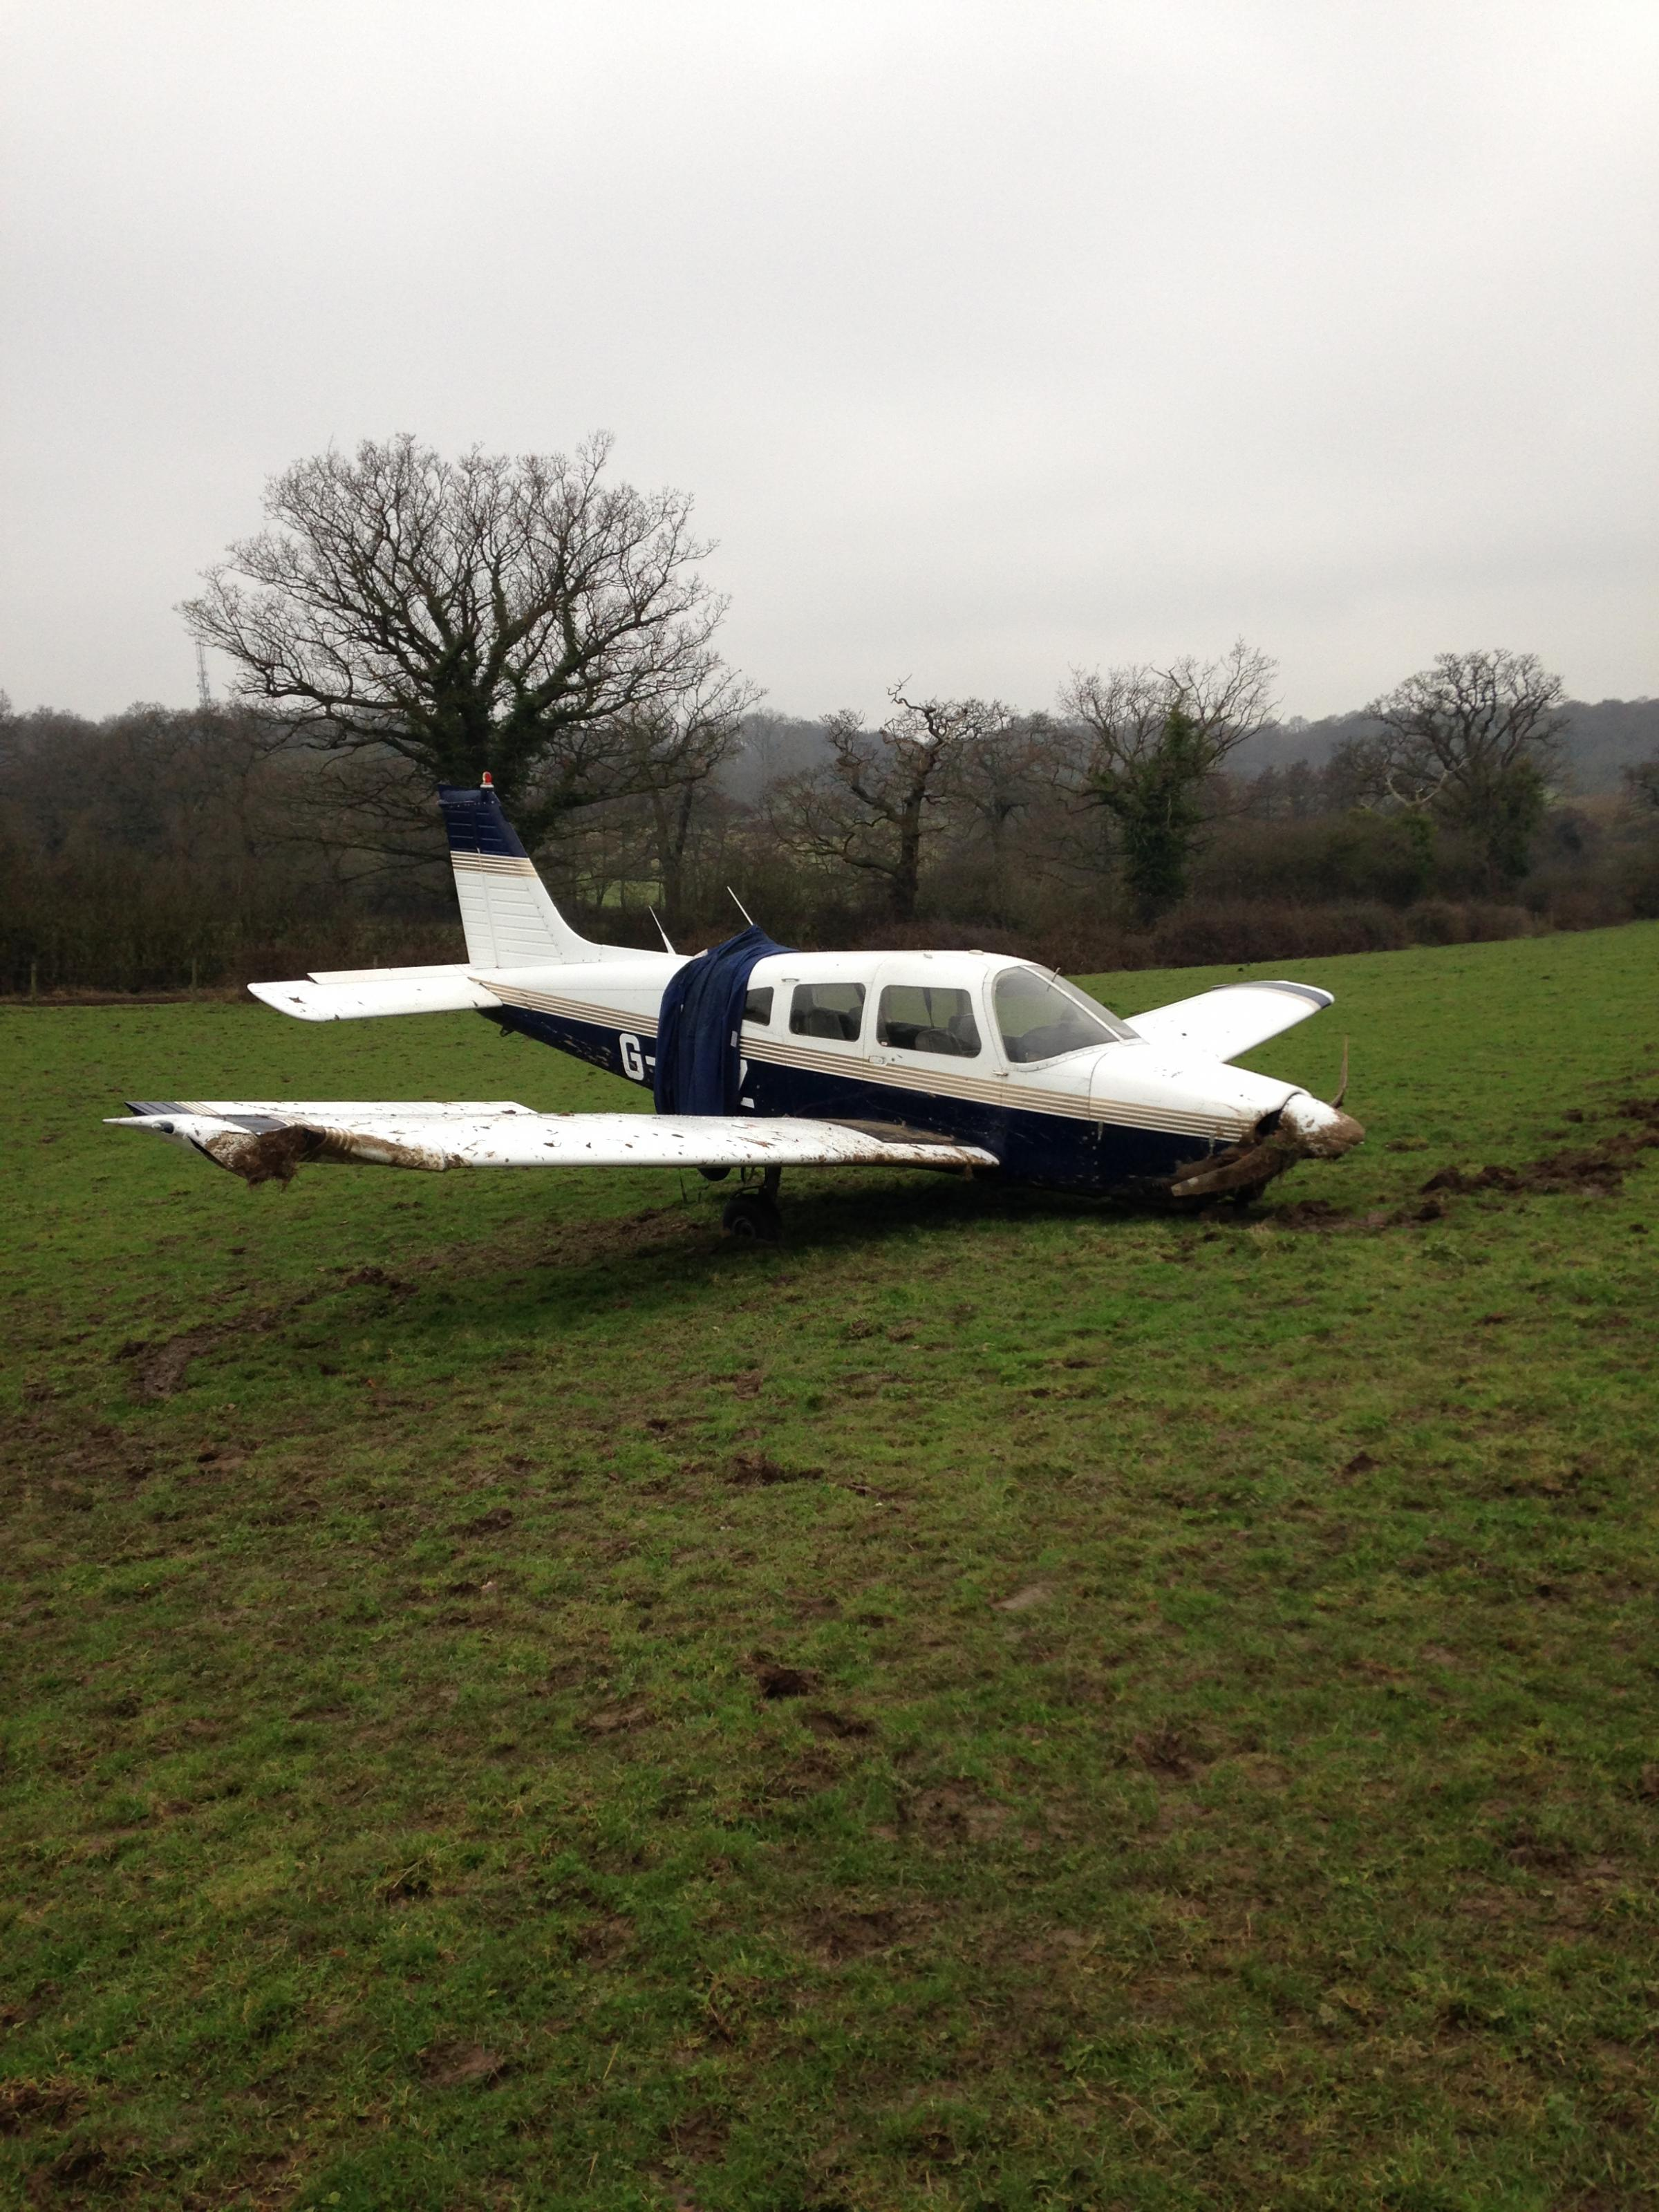 The plane came down at Grove Farm in Warren Lane, Stanmore